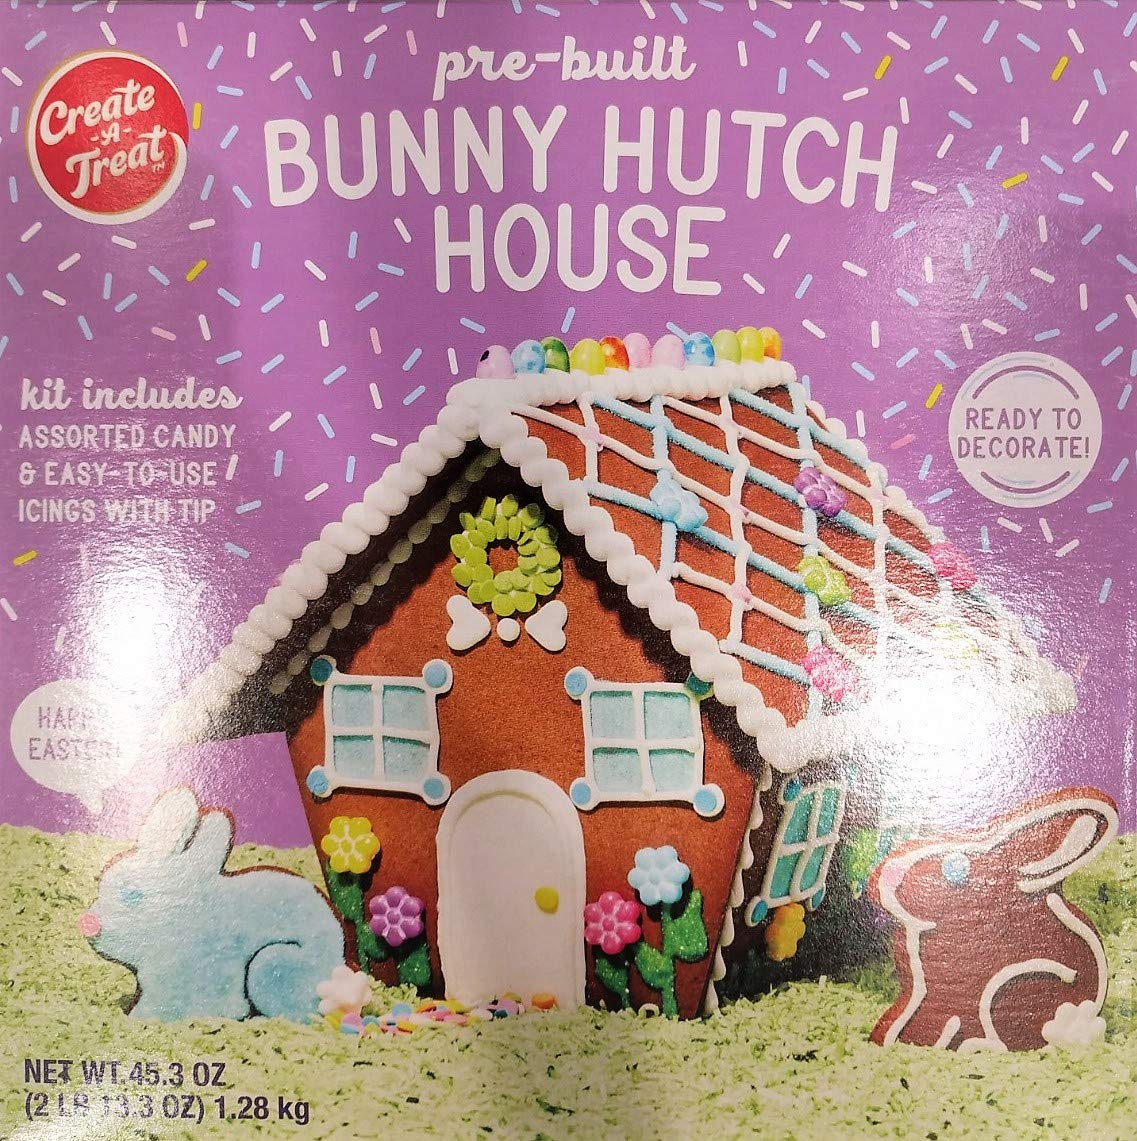 Create a Treat Pre-Built Bunny Hutch House 45 oz - Ready to Decorate